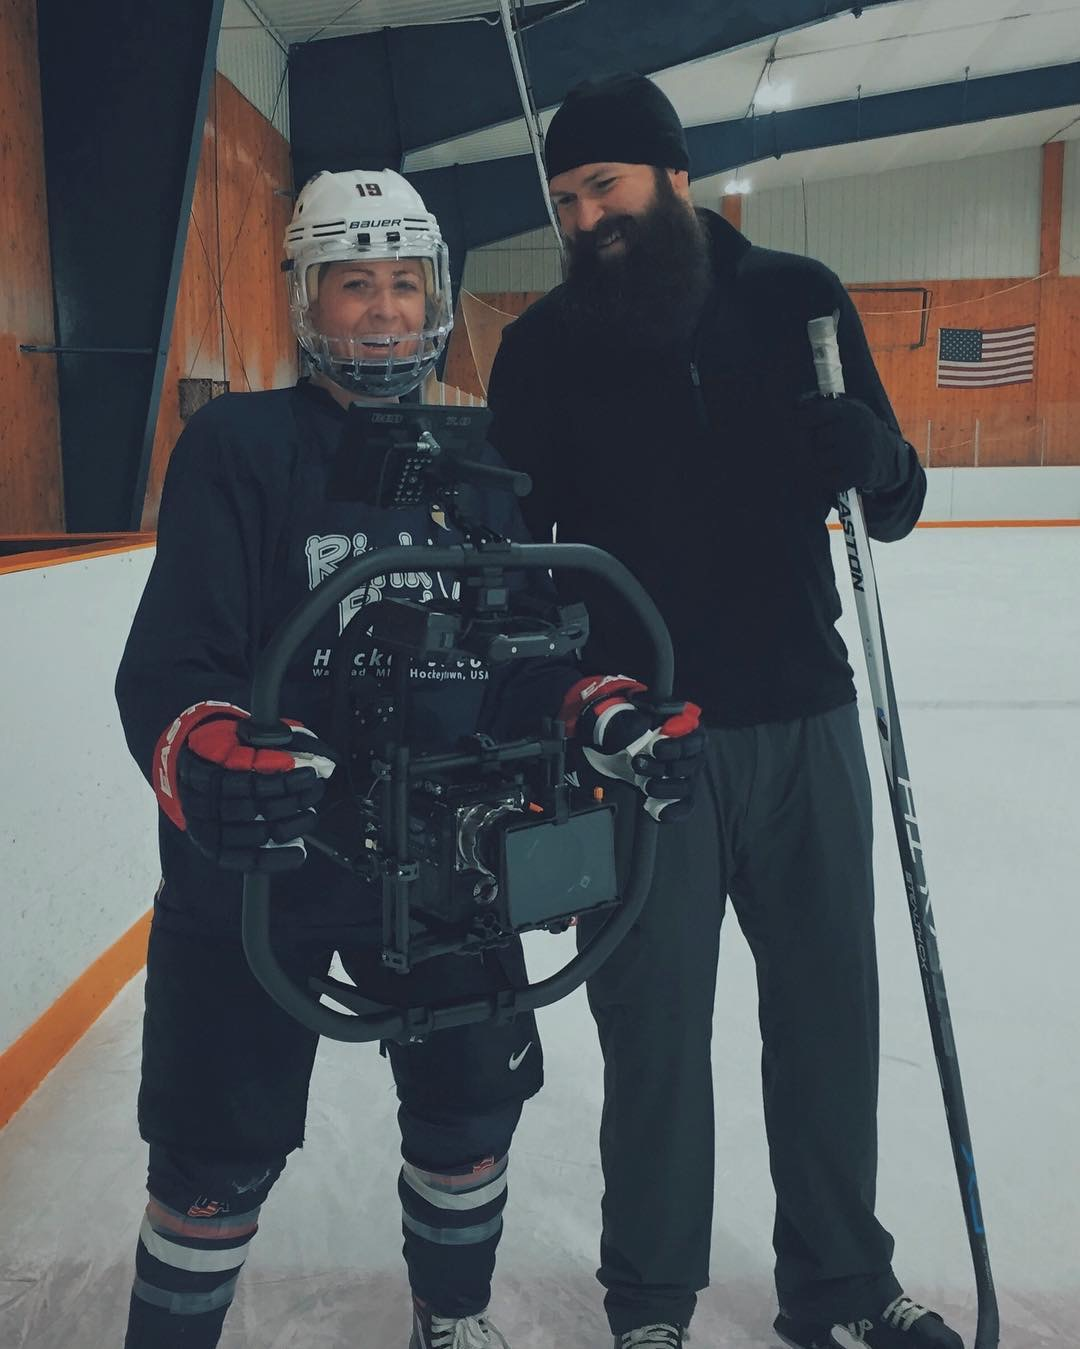 Photo of James with hockey player holding camera rig